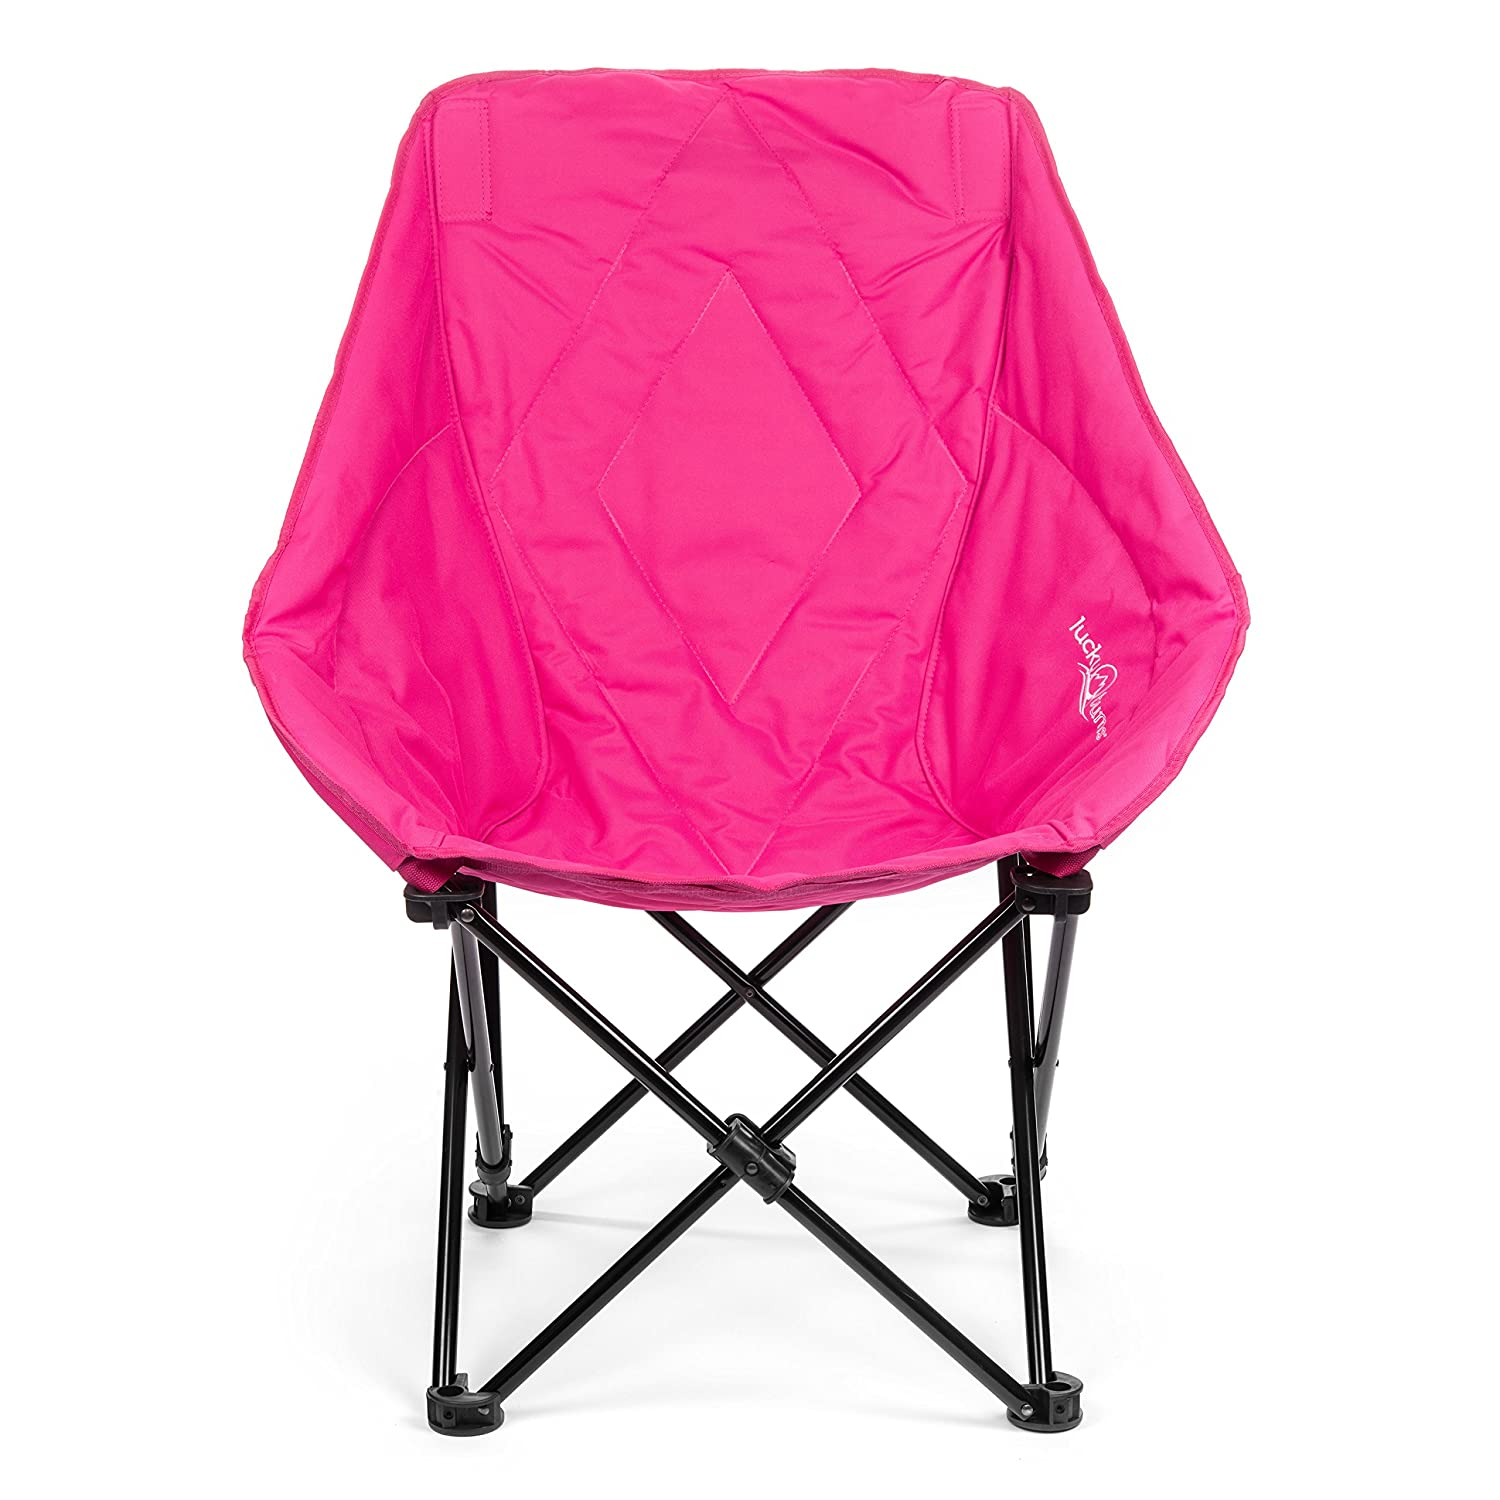 Lucky Bums Adult Oversized Folding Lounge Camp Chair, Large